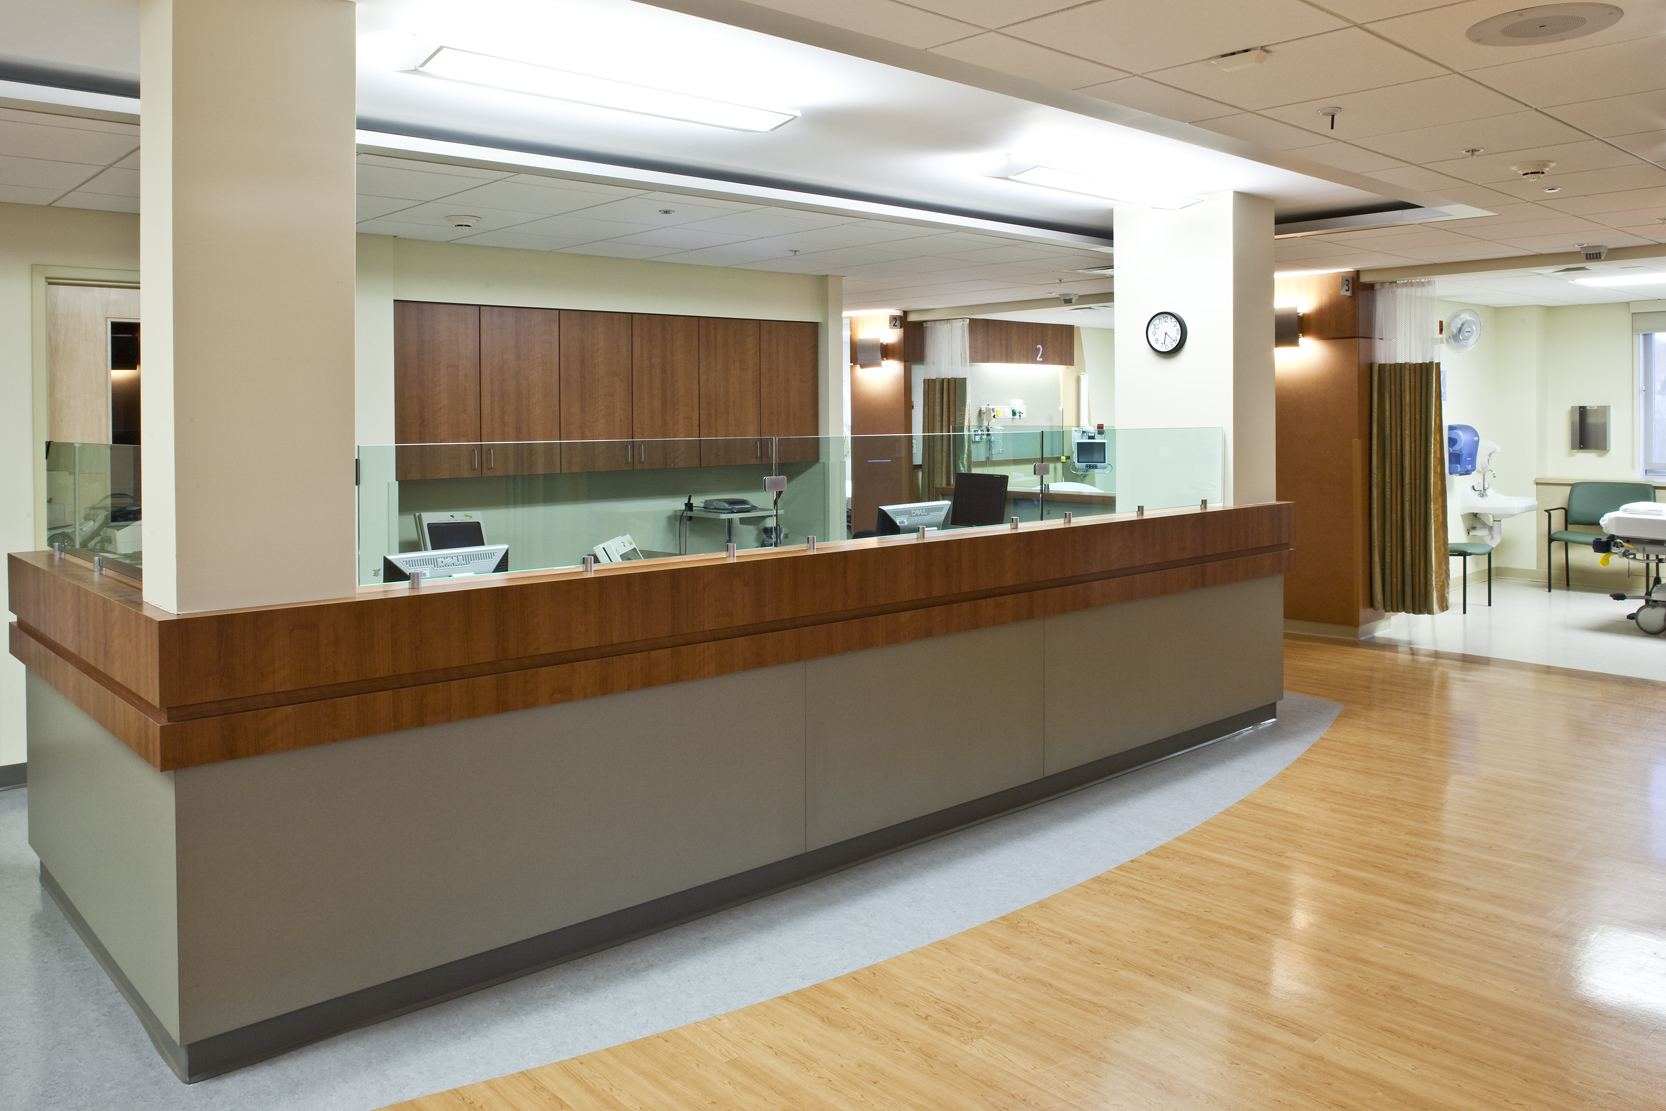 Two primary nursing stations and sub-nursing stations in the central core provide full visual coverage of patients.